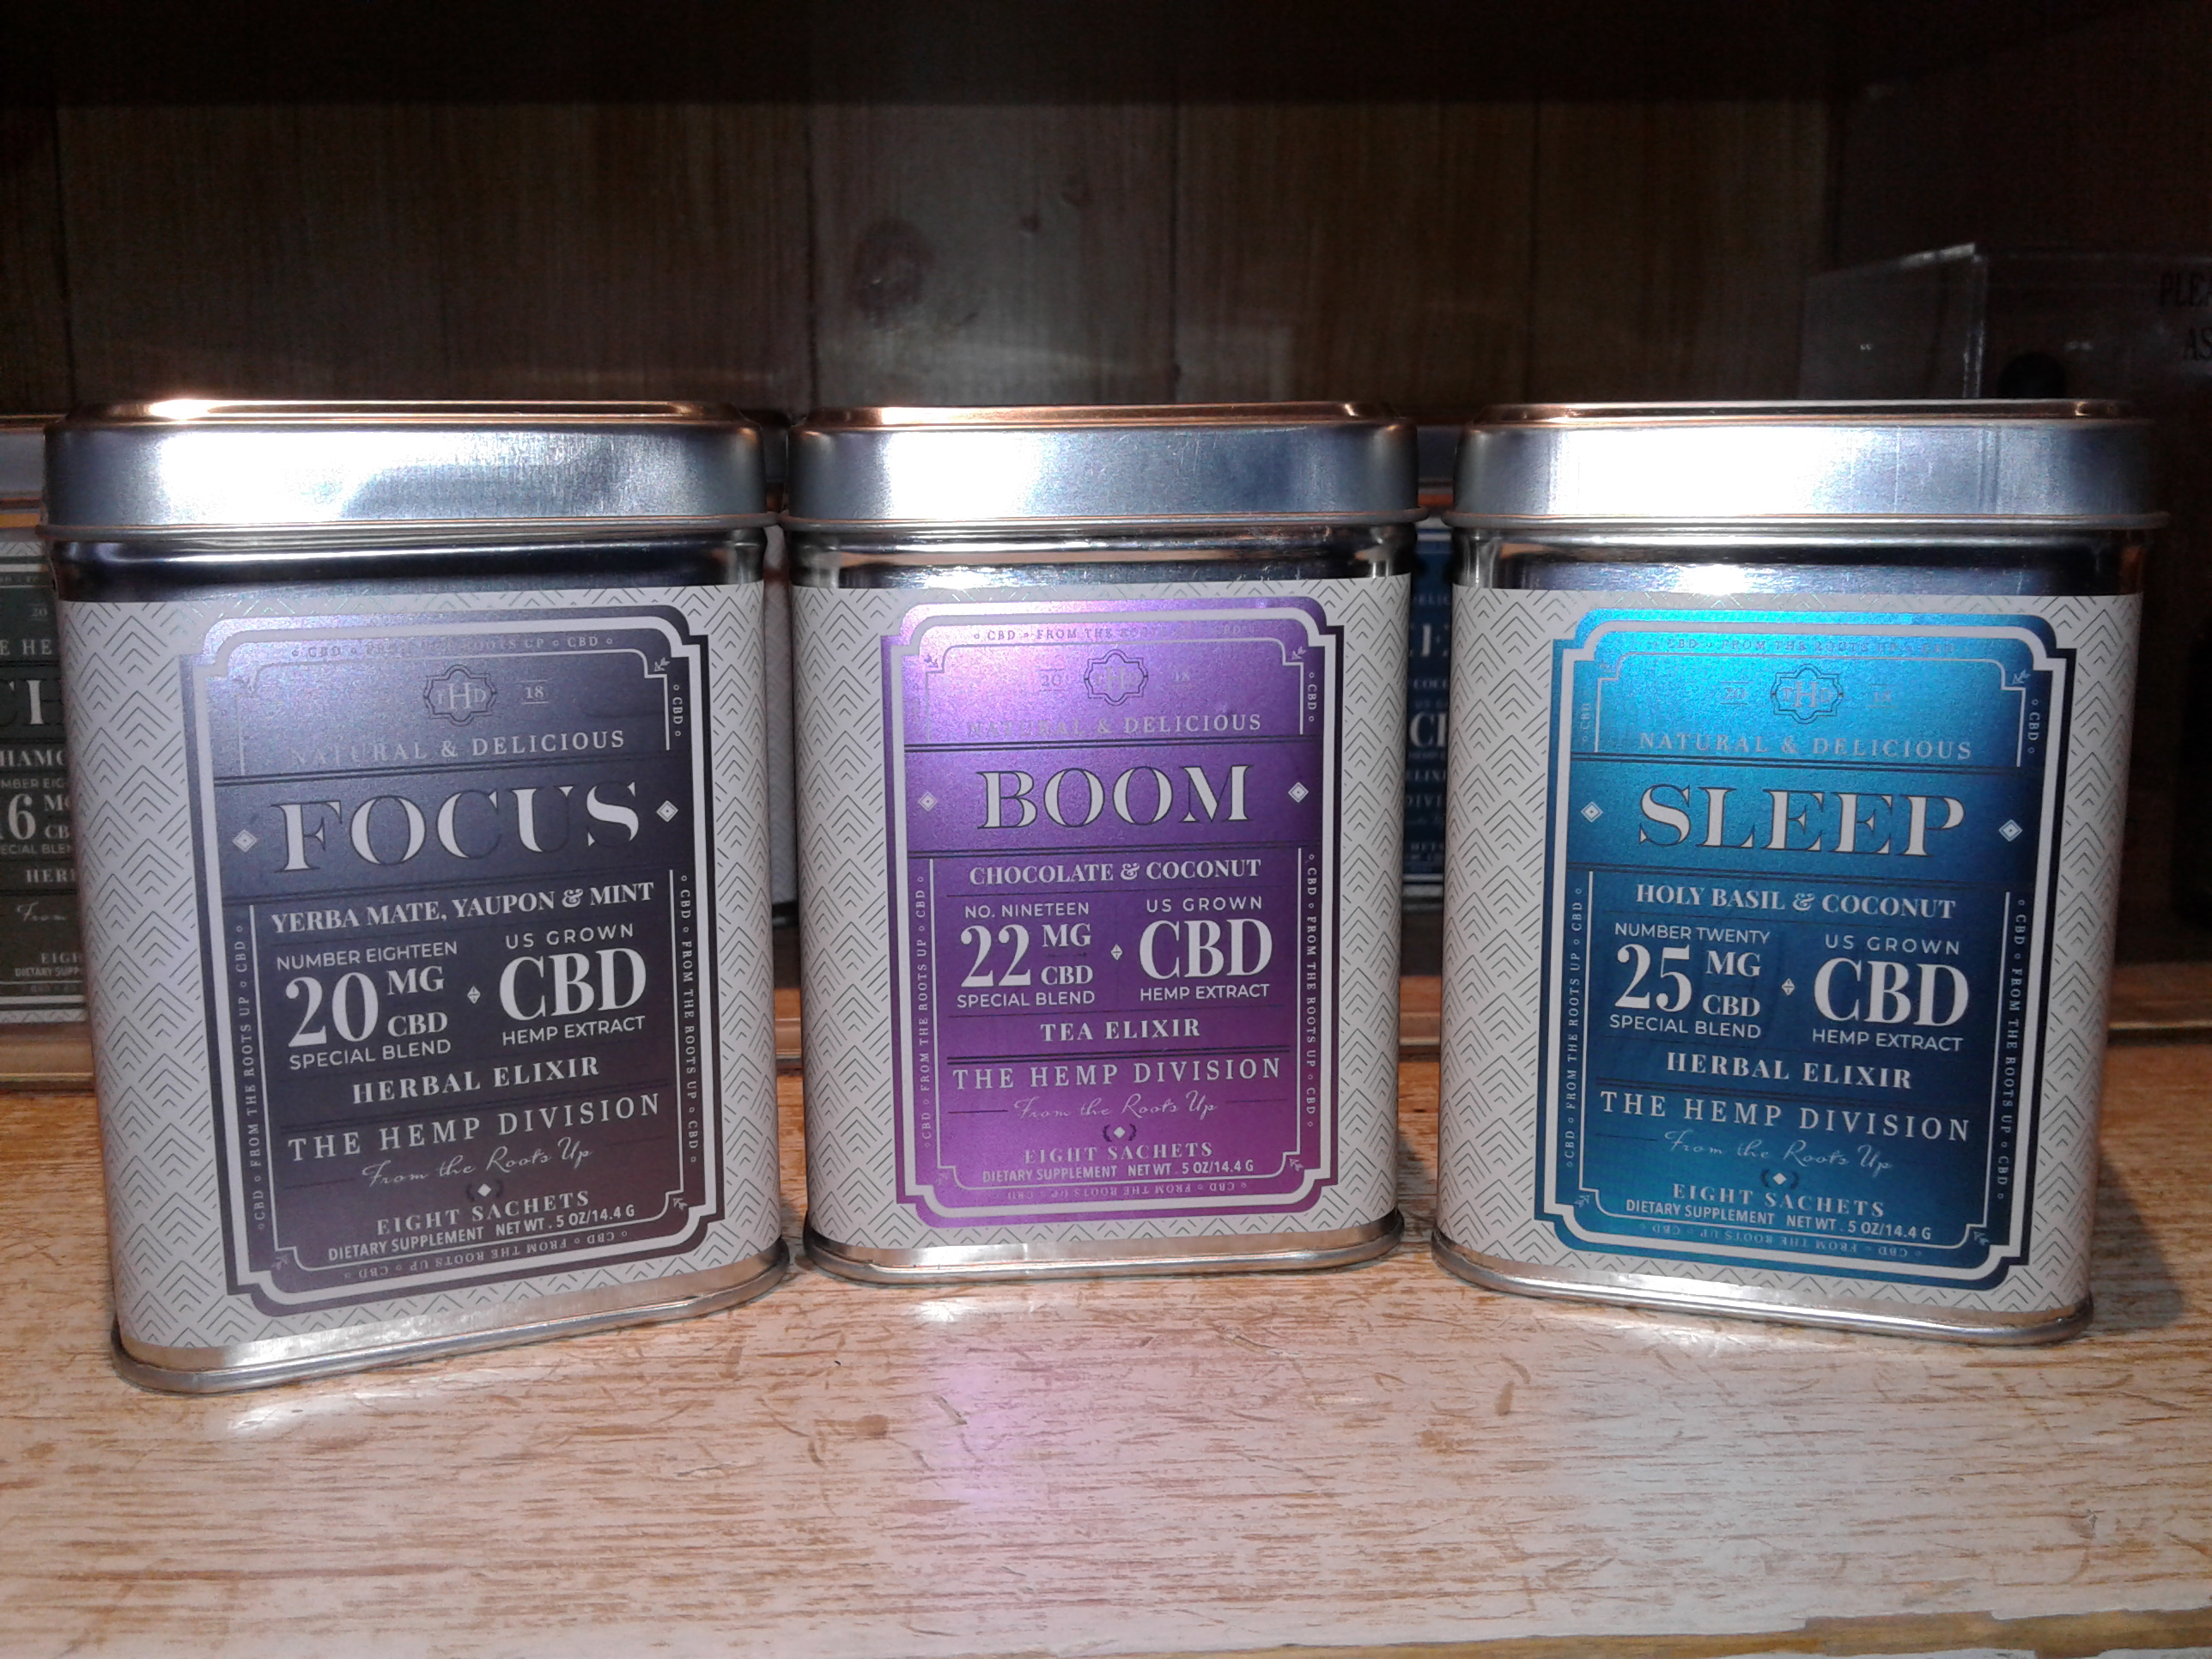 <strong>From honey to tins and bags of tea, rows of products from The Hemp Division, the sister company of Harney &amp; Sons Fine Tea, can now be found on the shelves at the Harney &amp; Sons Tasting Room, located at 13 Main St. in Millerton.<em> Photo by Kaitlin Lyle</em></strong>